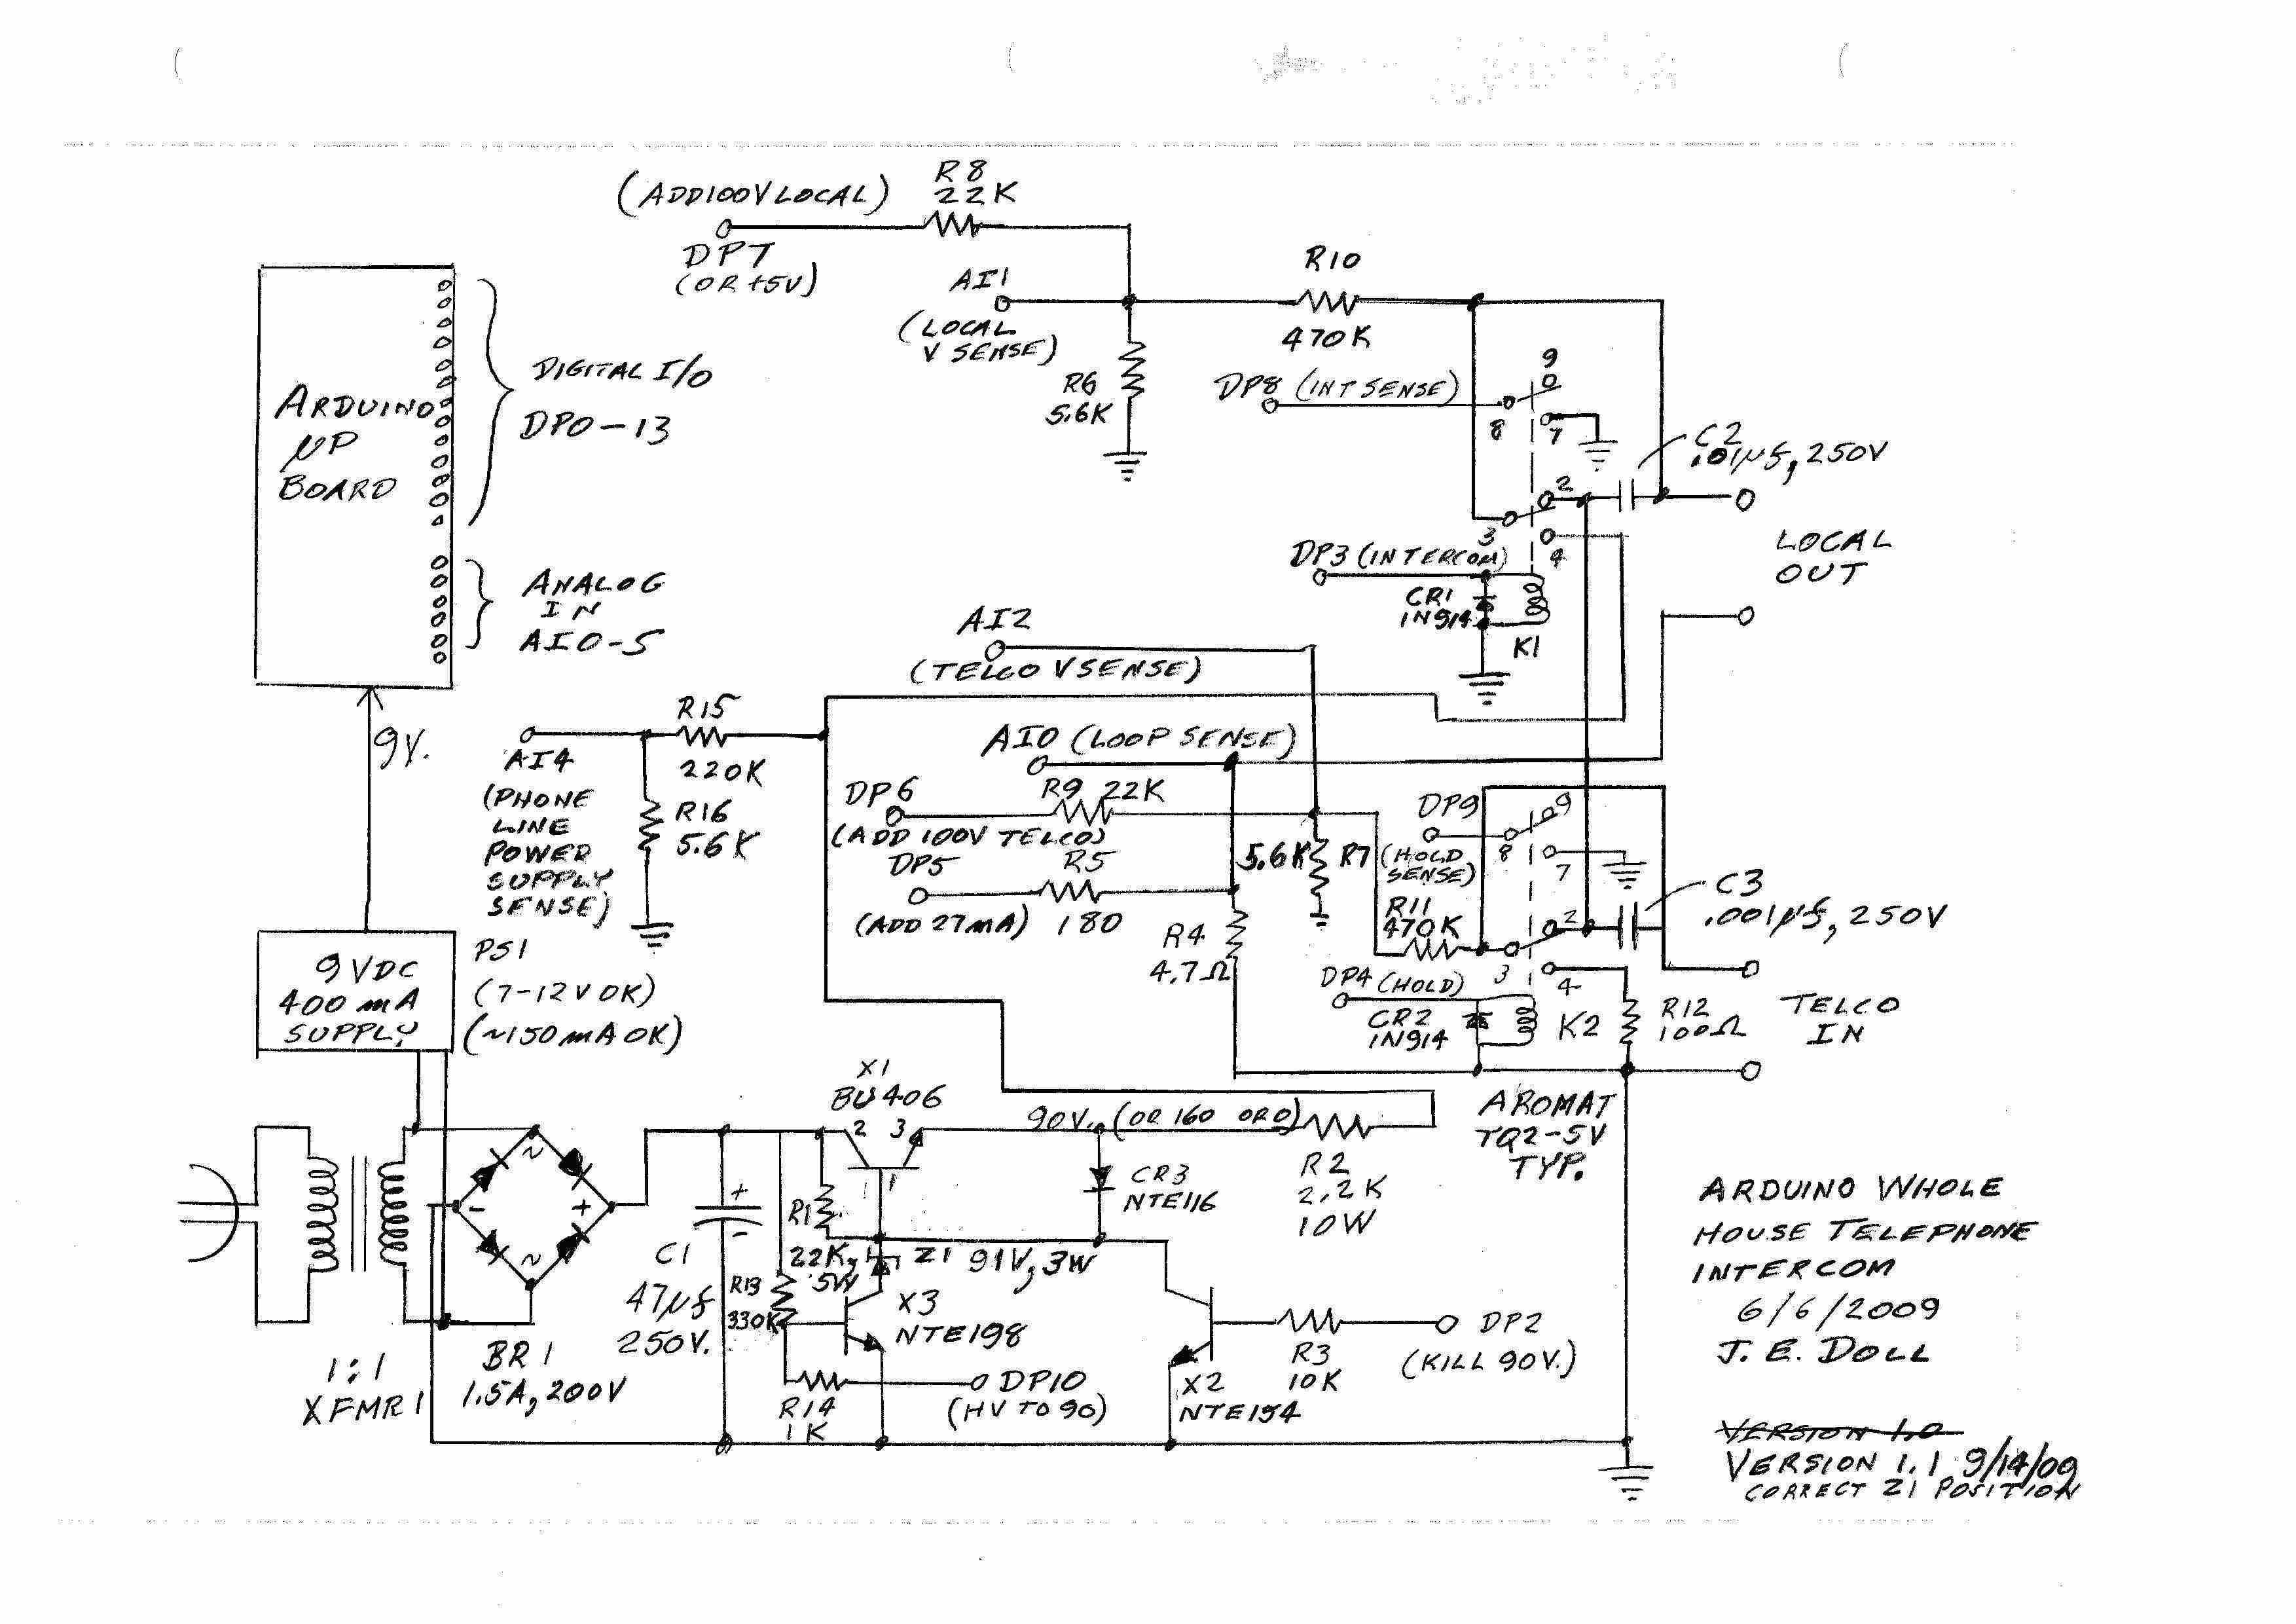 household telephone wiring diagram wiring diagrams and schematics home telephone wiring diagram photo al diagramsinstalling phone jack in a smaller ptc 103 990210